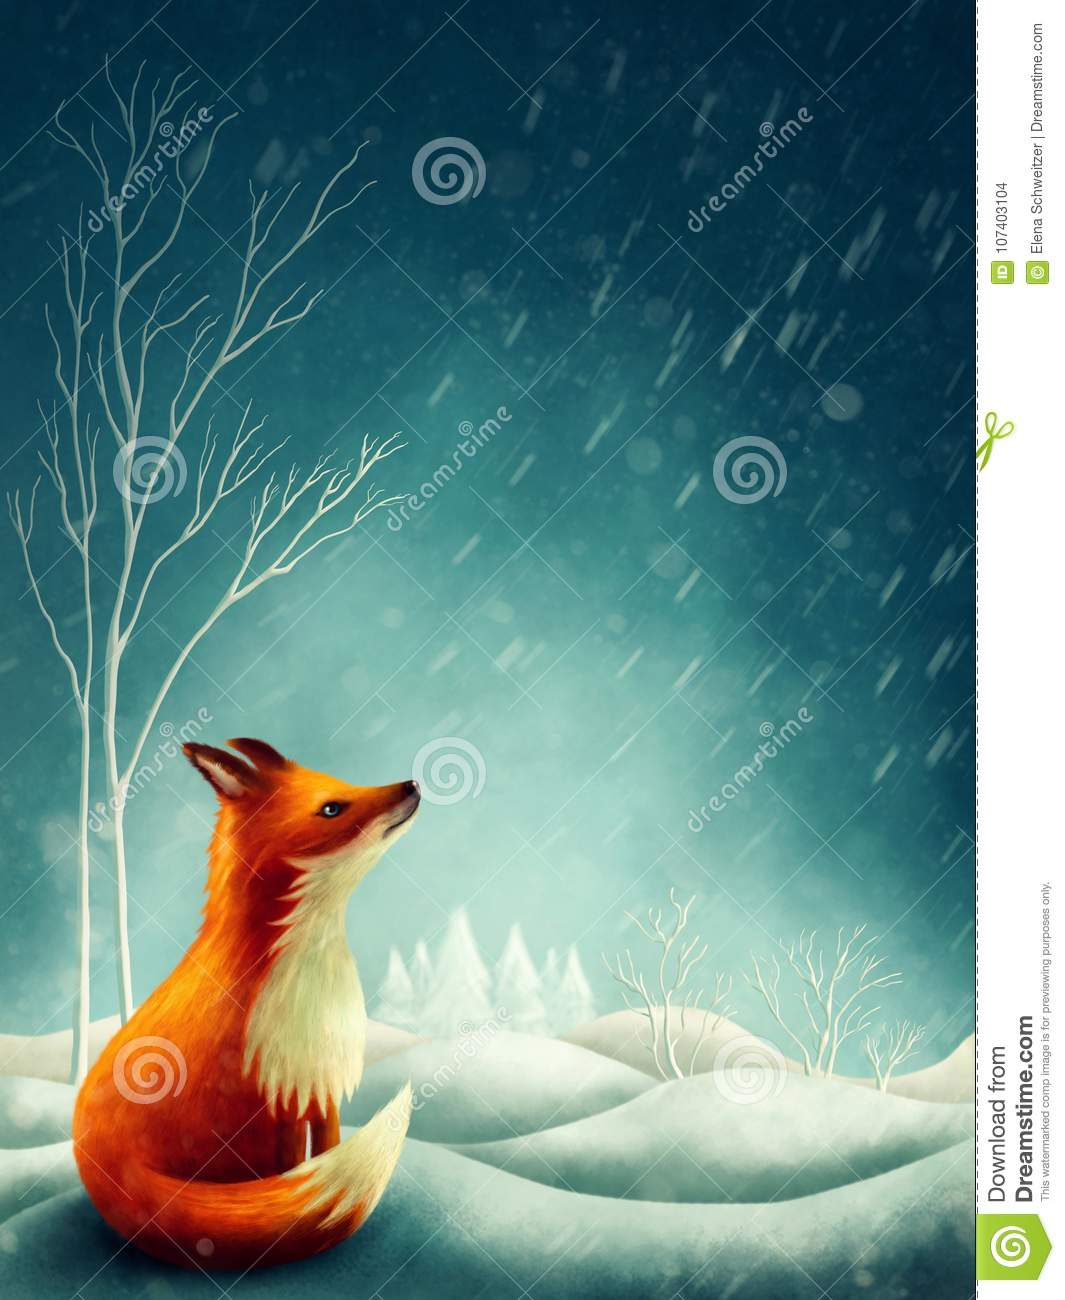 Little red fox in winter